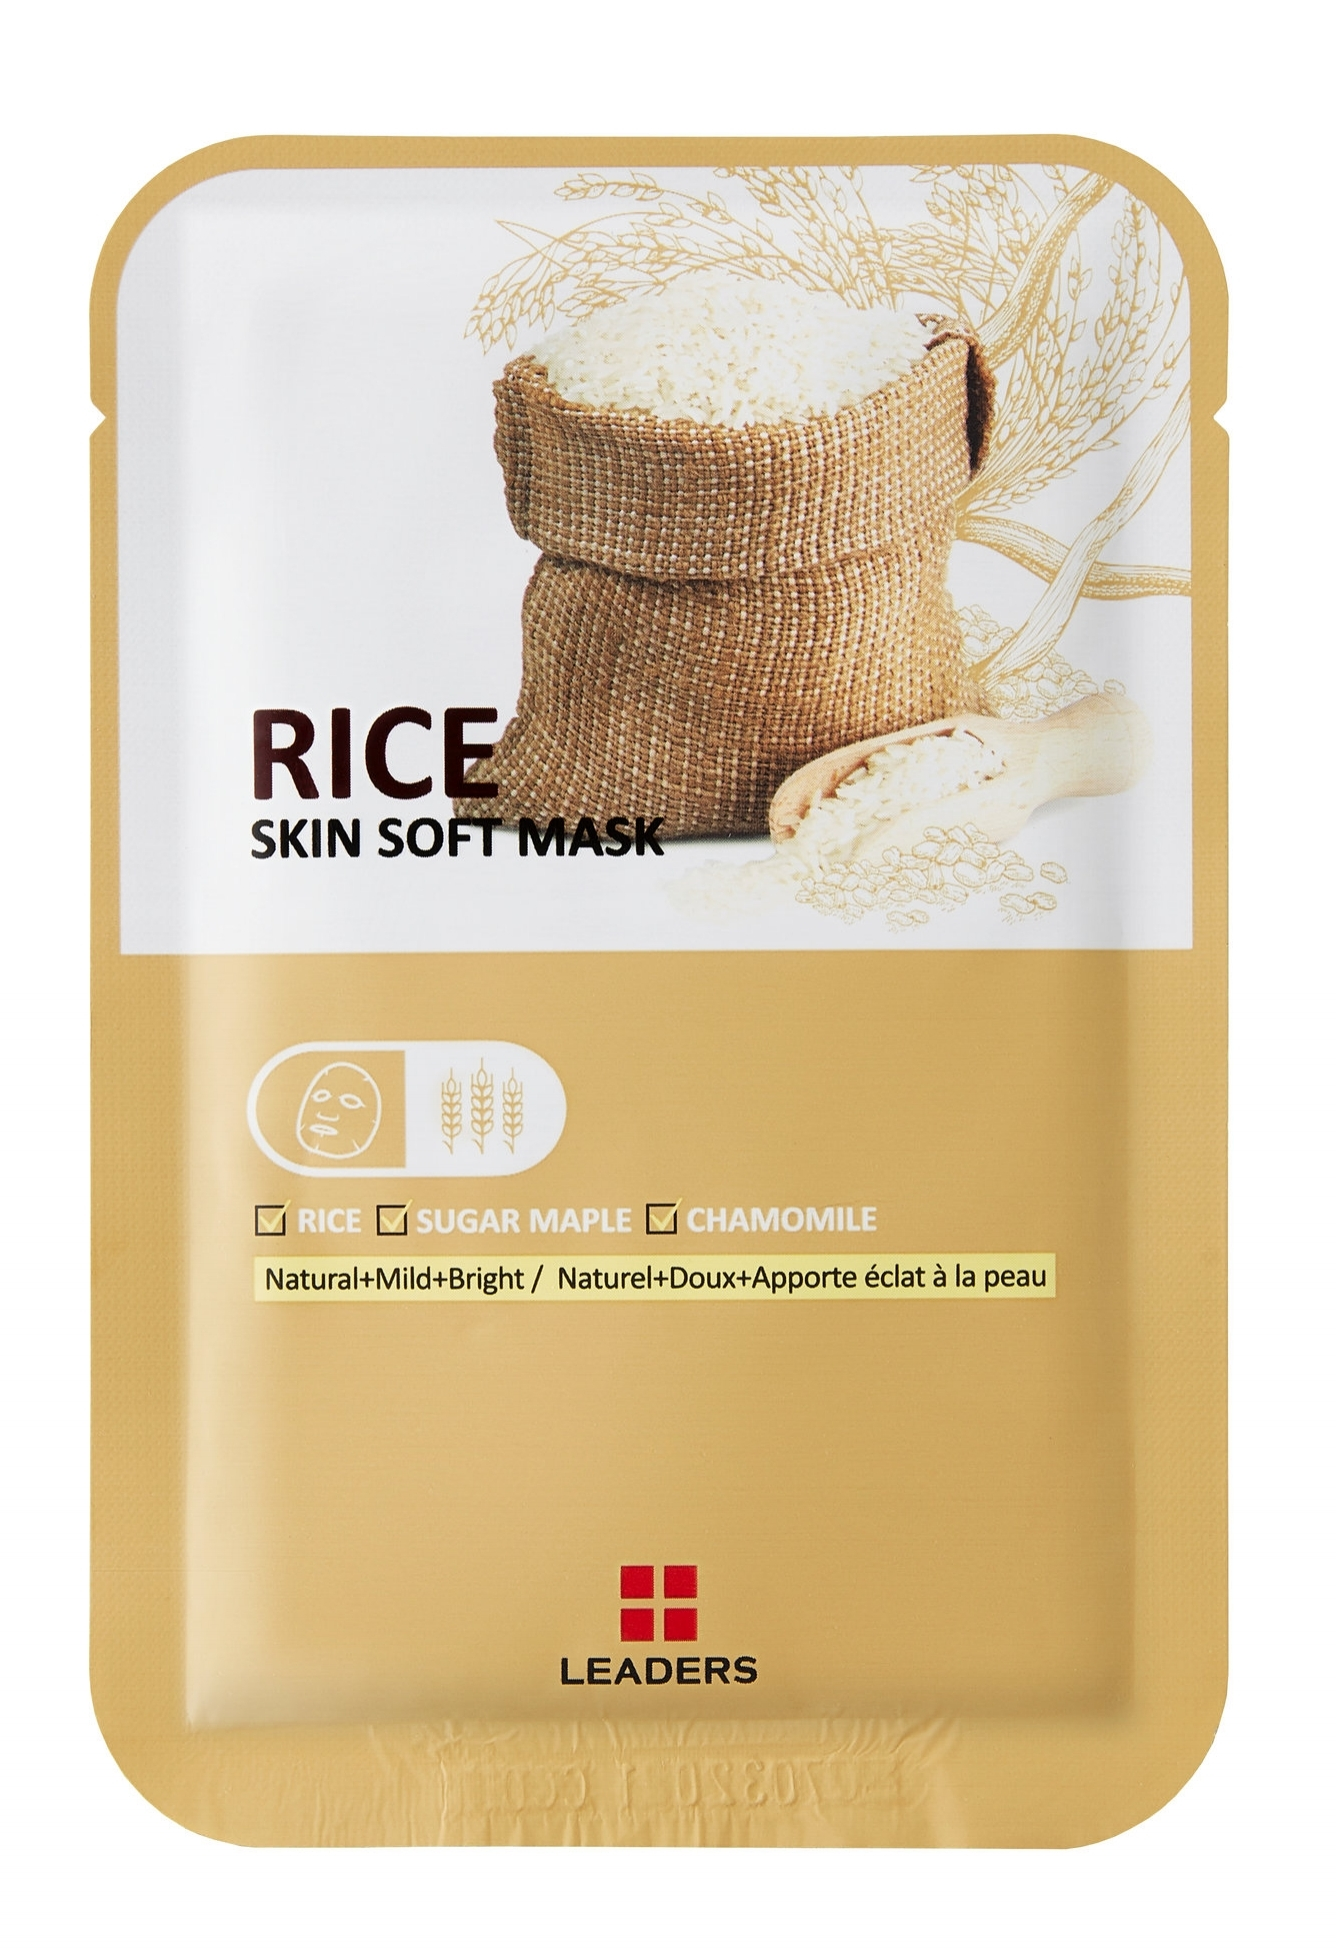 Leaders_Labotica Rice Skin Soft Mask_pouch_front.jpg